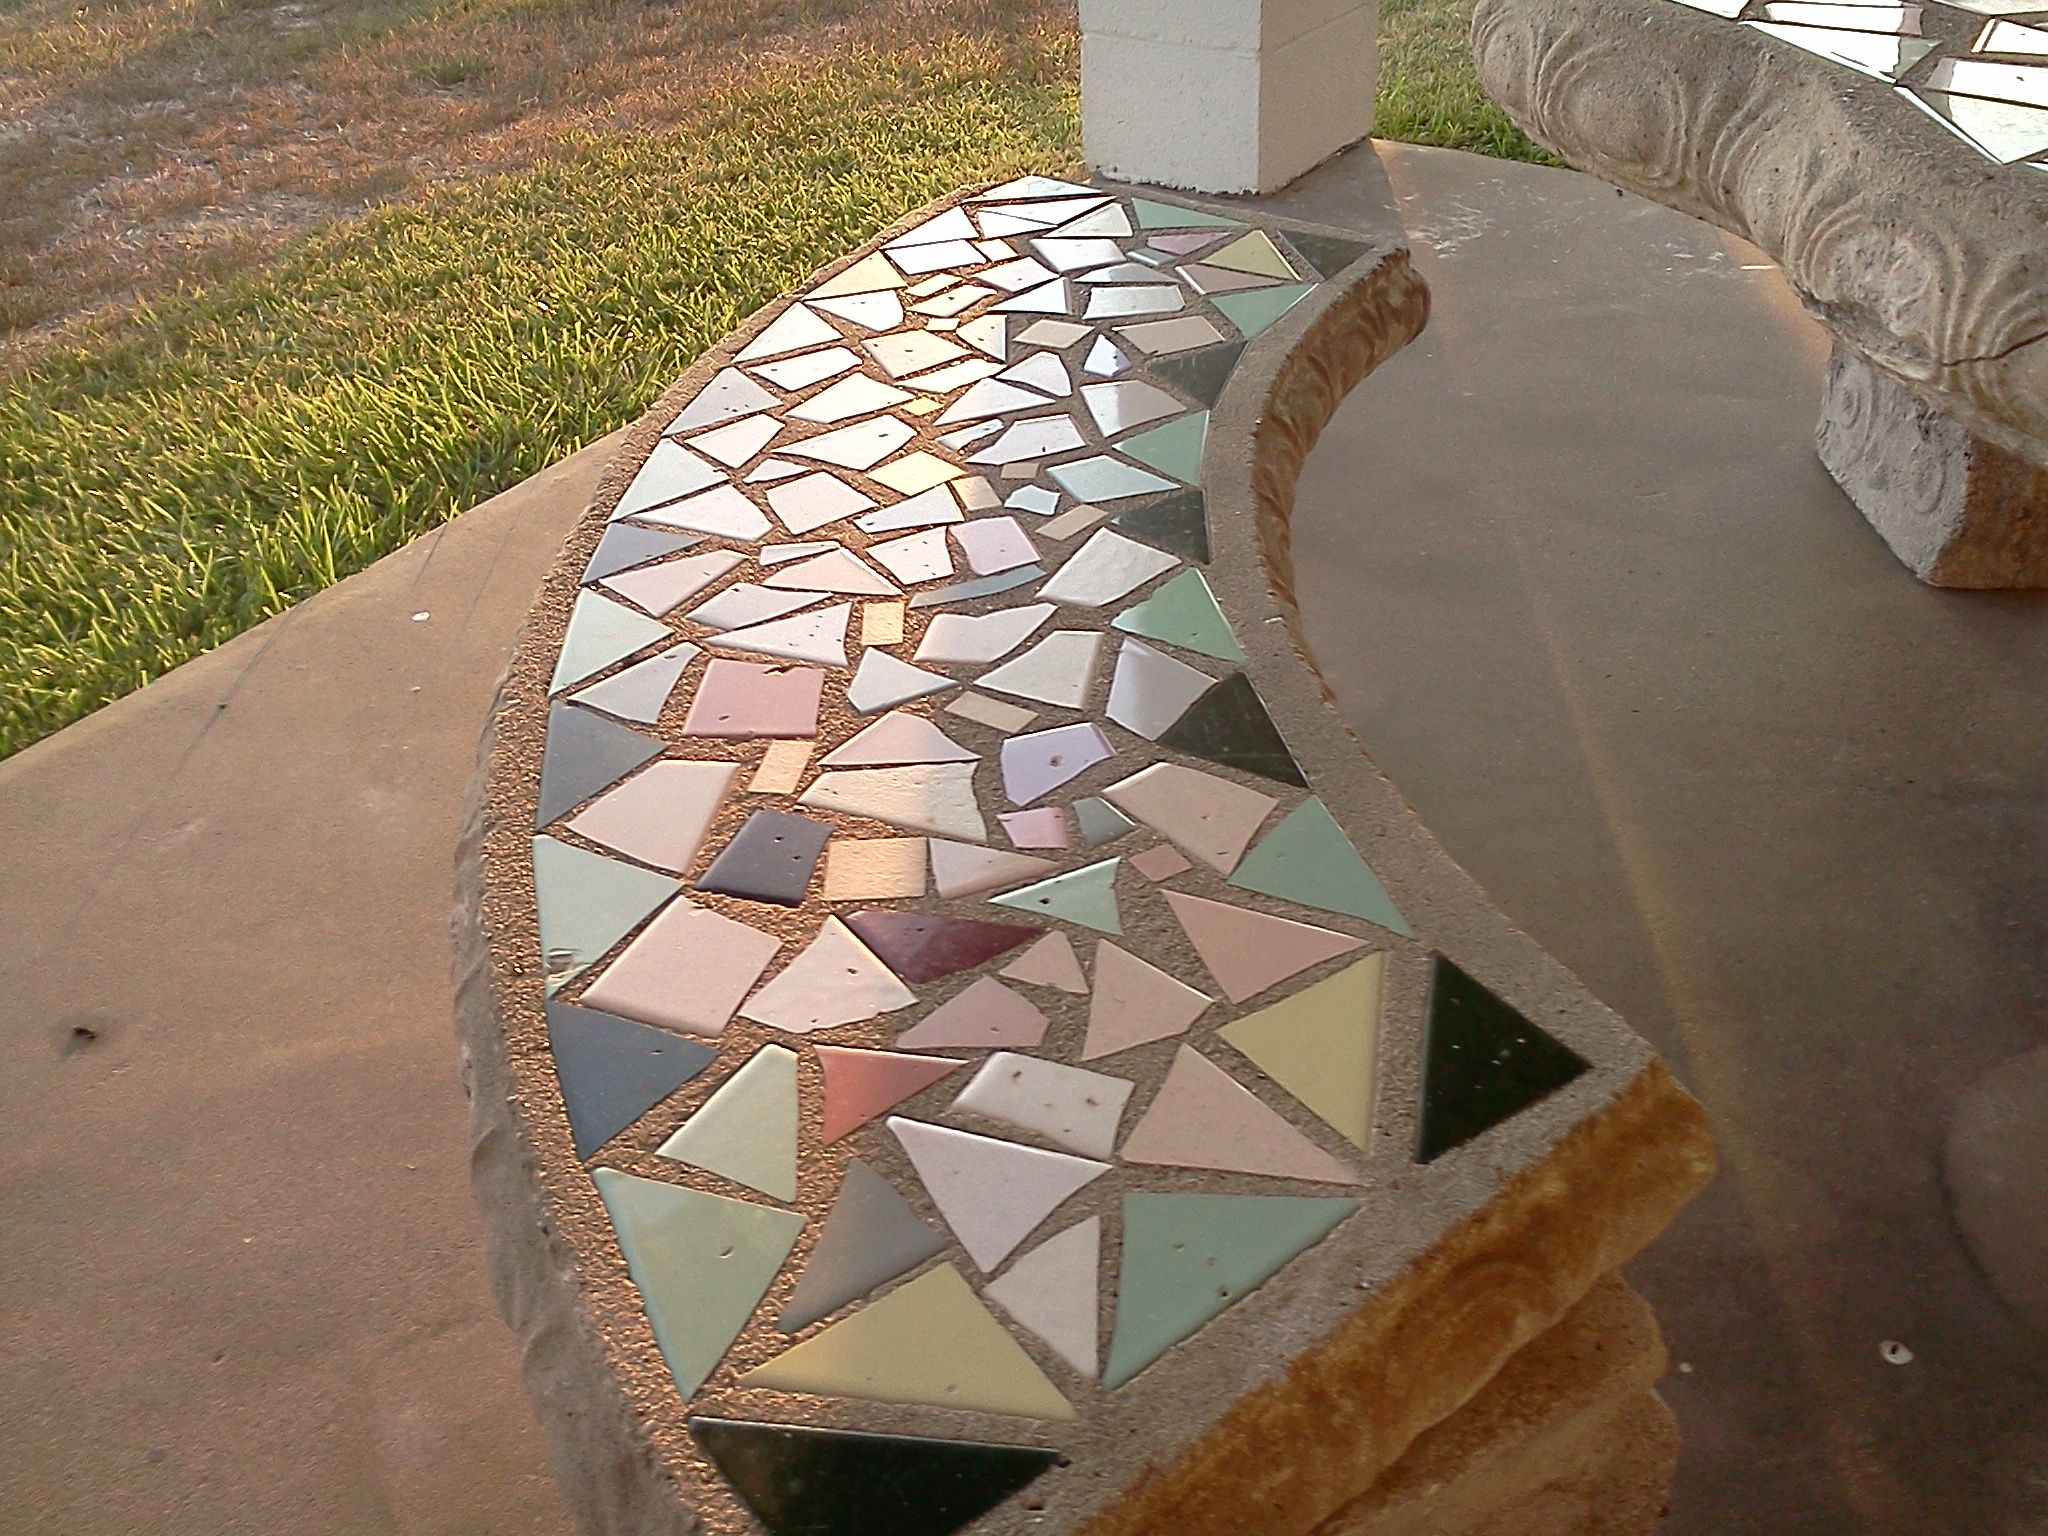 Outdoor Tile Table Top Cement Bench With Mosaic Tiles Tabletop Mosaic Me Crazy